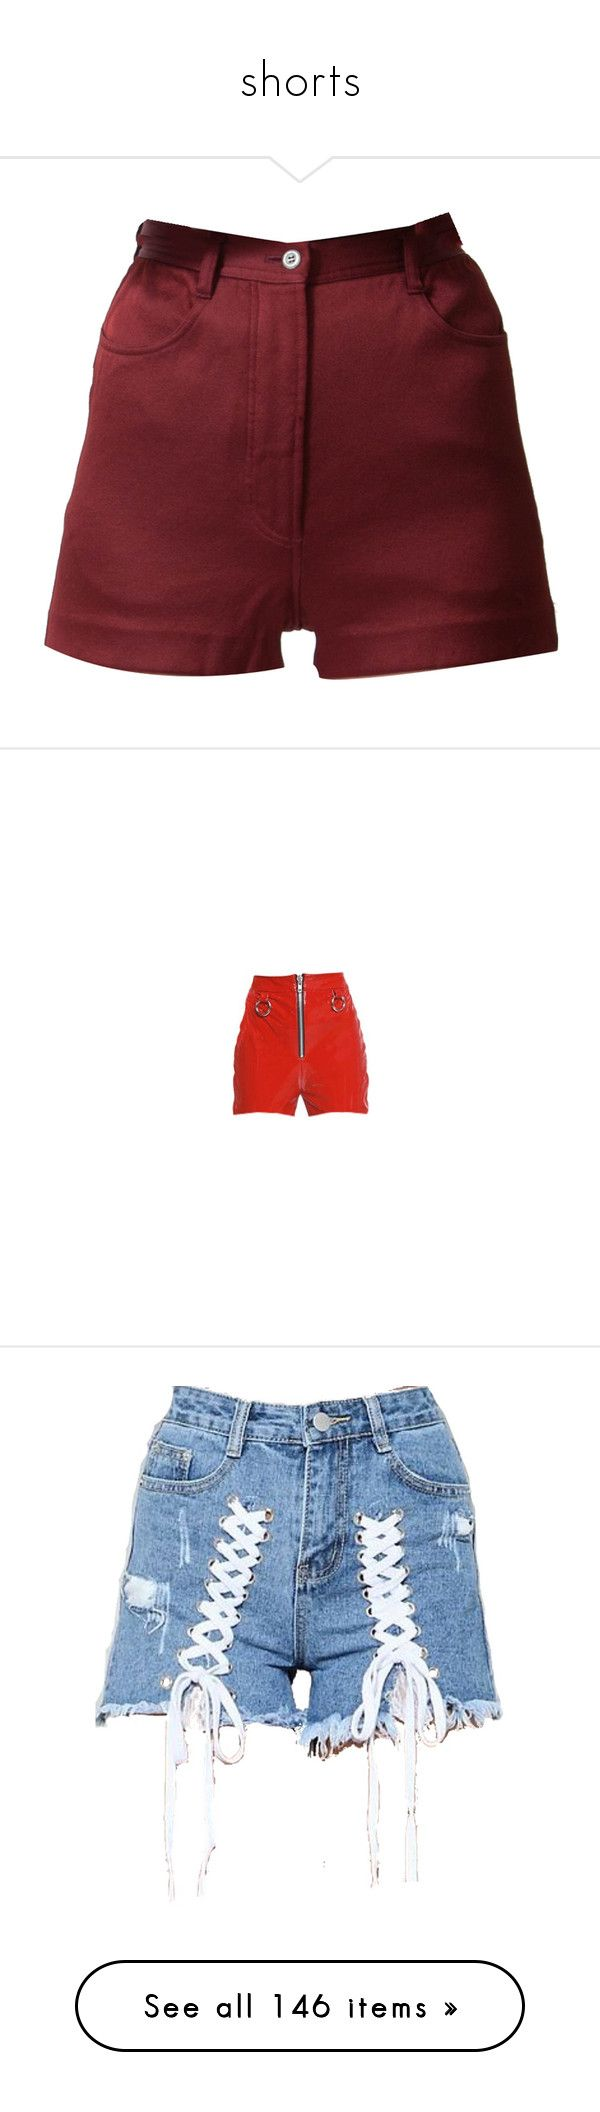 """""""shorts"""" by bittersweet-official ❤ liked on Polyvore featuring shorts, bottoms, silk shorts, high-waisted shorts, burgundy high waisted shorts, burgundy shorts, high-rise shorts, skirts, draw string shorts and loose fit shorts"""